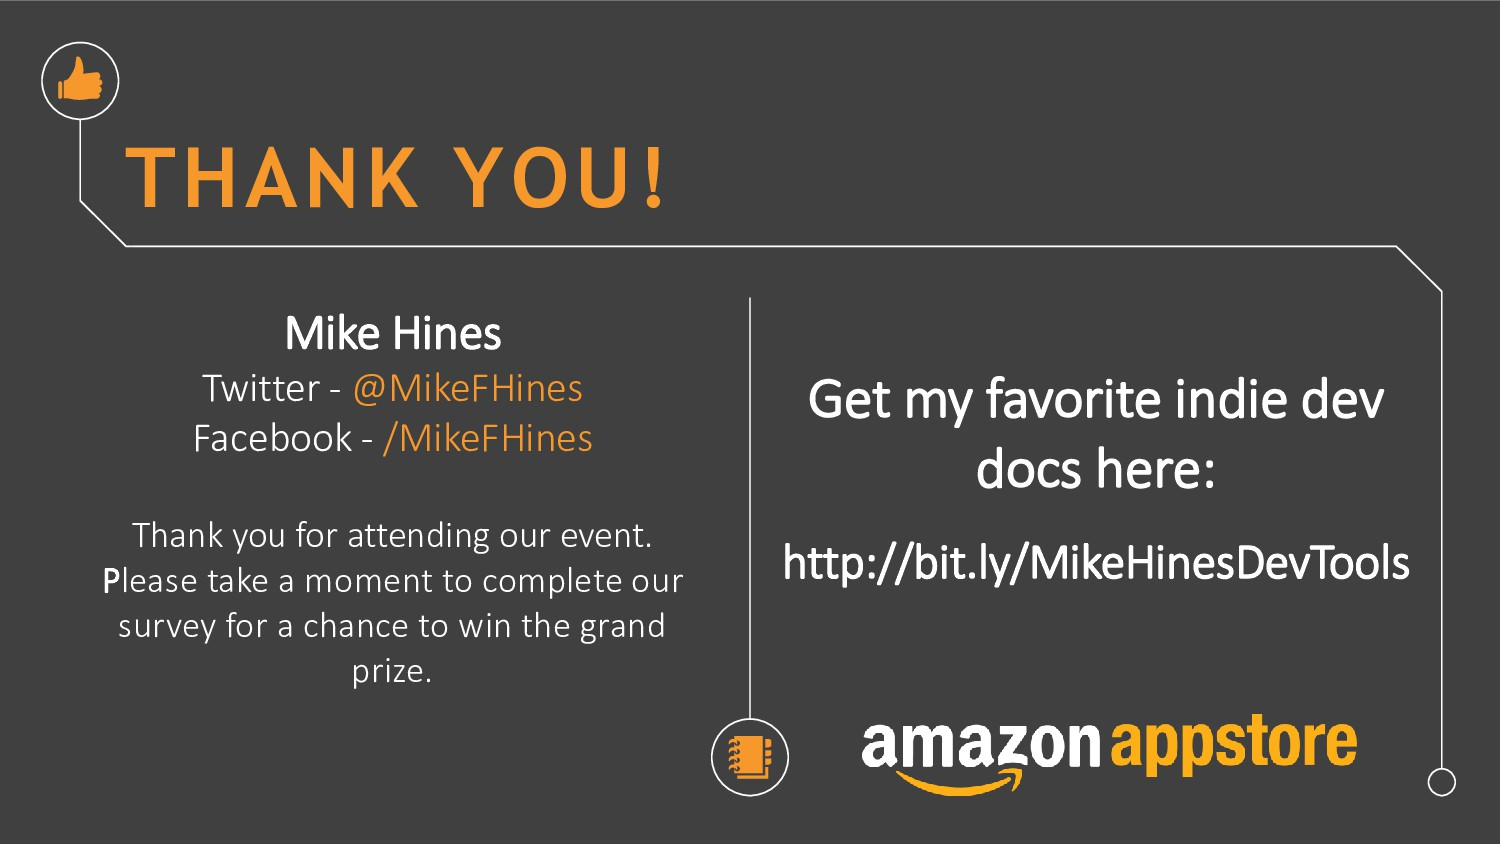 THANK YOU! Mike Hines Twitter - @MikeFHines Fac...